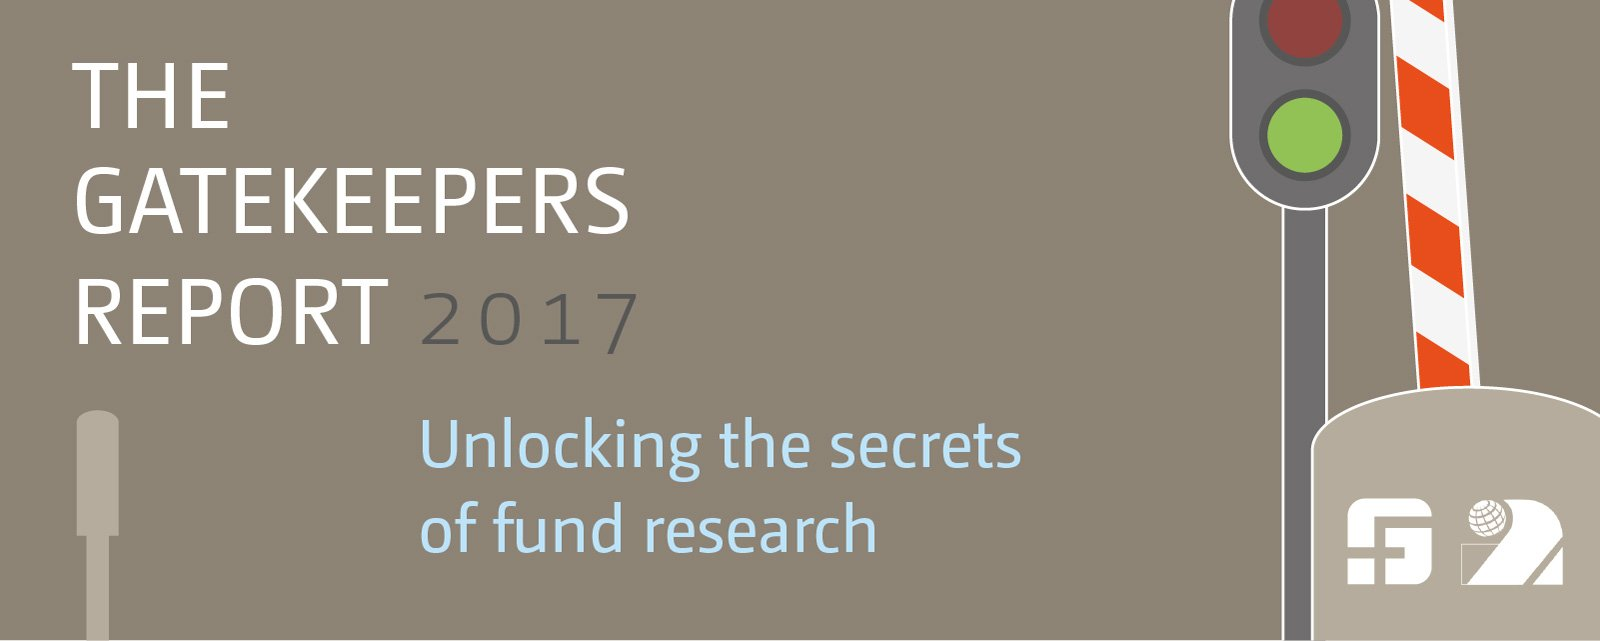 Gatekeepers 2017 report